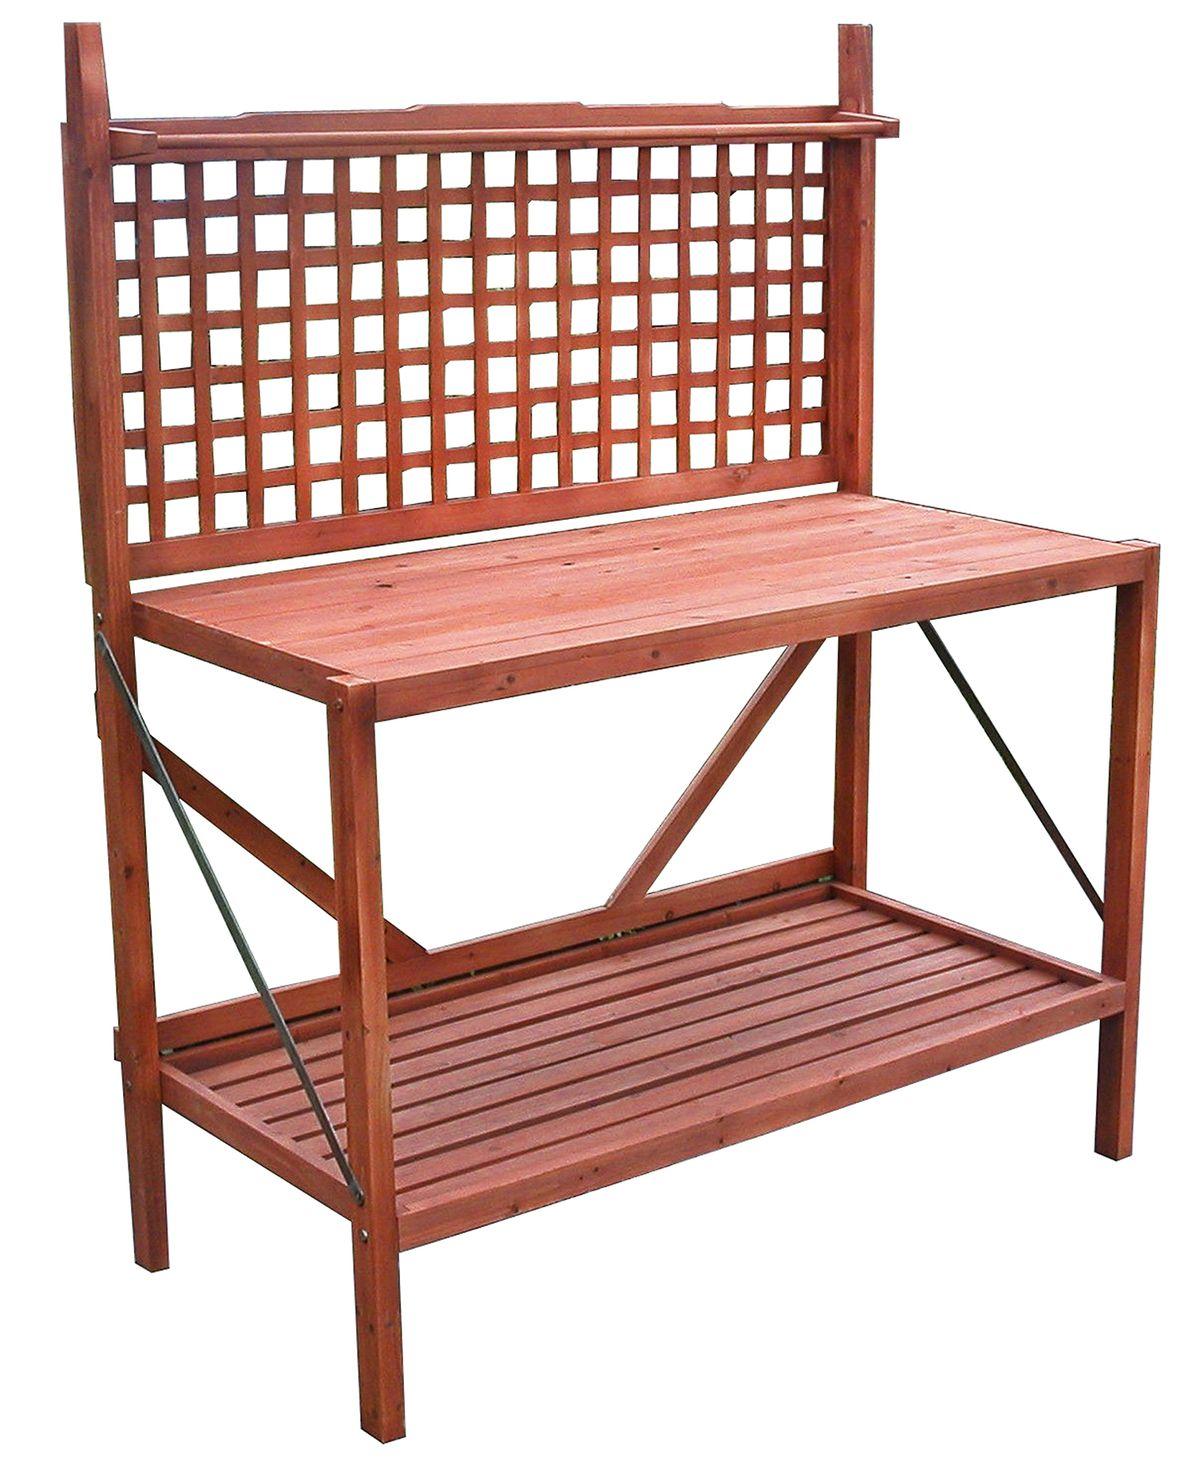 "<p>Storage shelves, a lattice back for hanging utensils, and ample counter space make this collapsible fir potting bench an ideal bar or serving station.</p> <p><br> <em>About $127; <a href=""http://www.wayfair.com/"" target=""_blank"">Wayfair</a></em></p>"